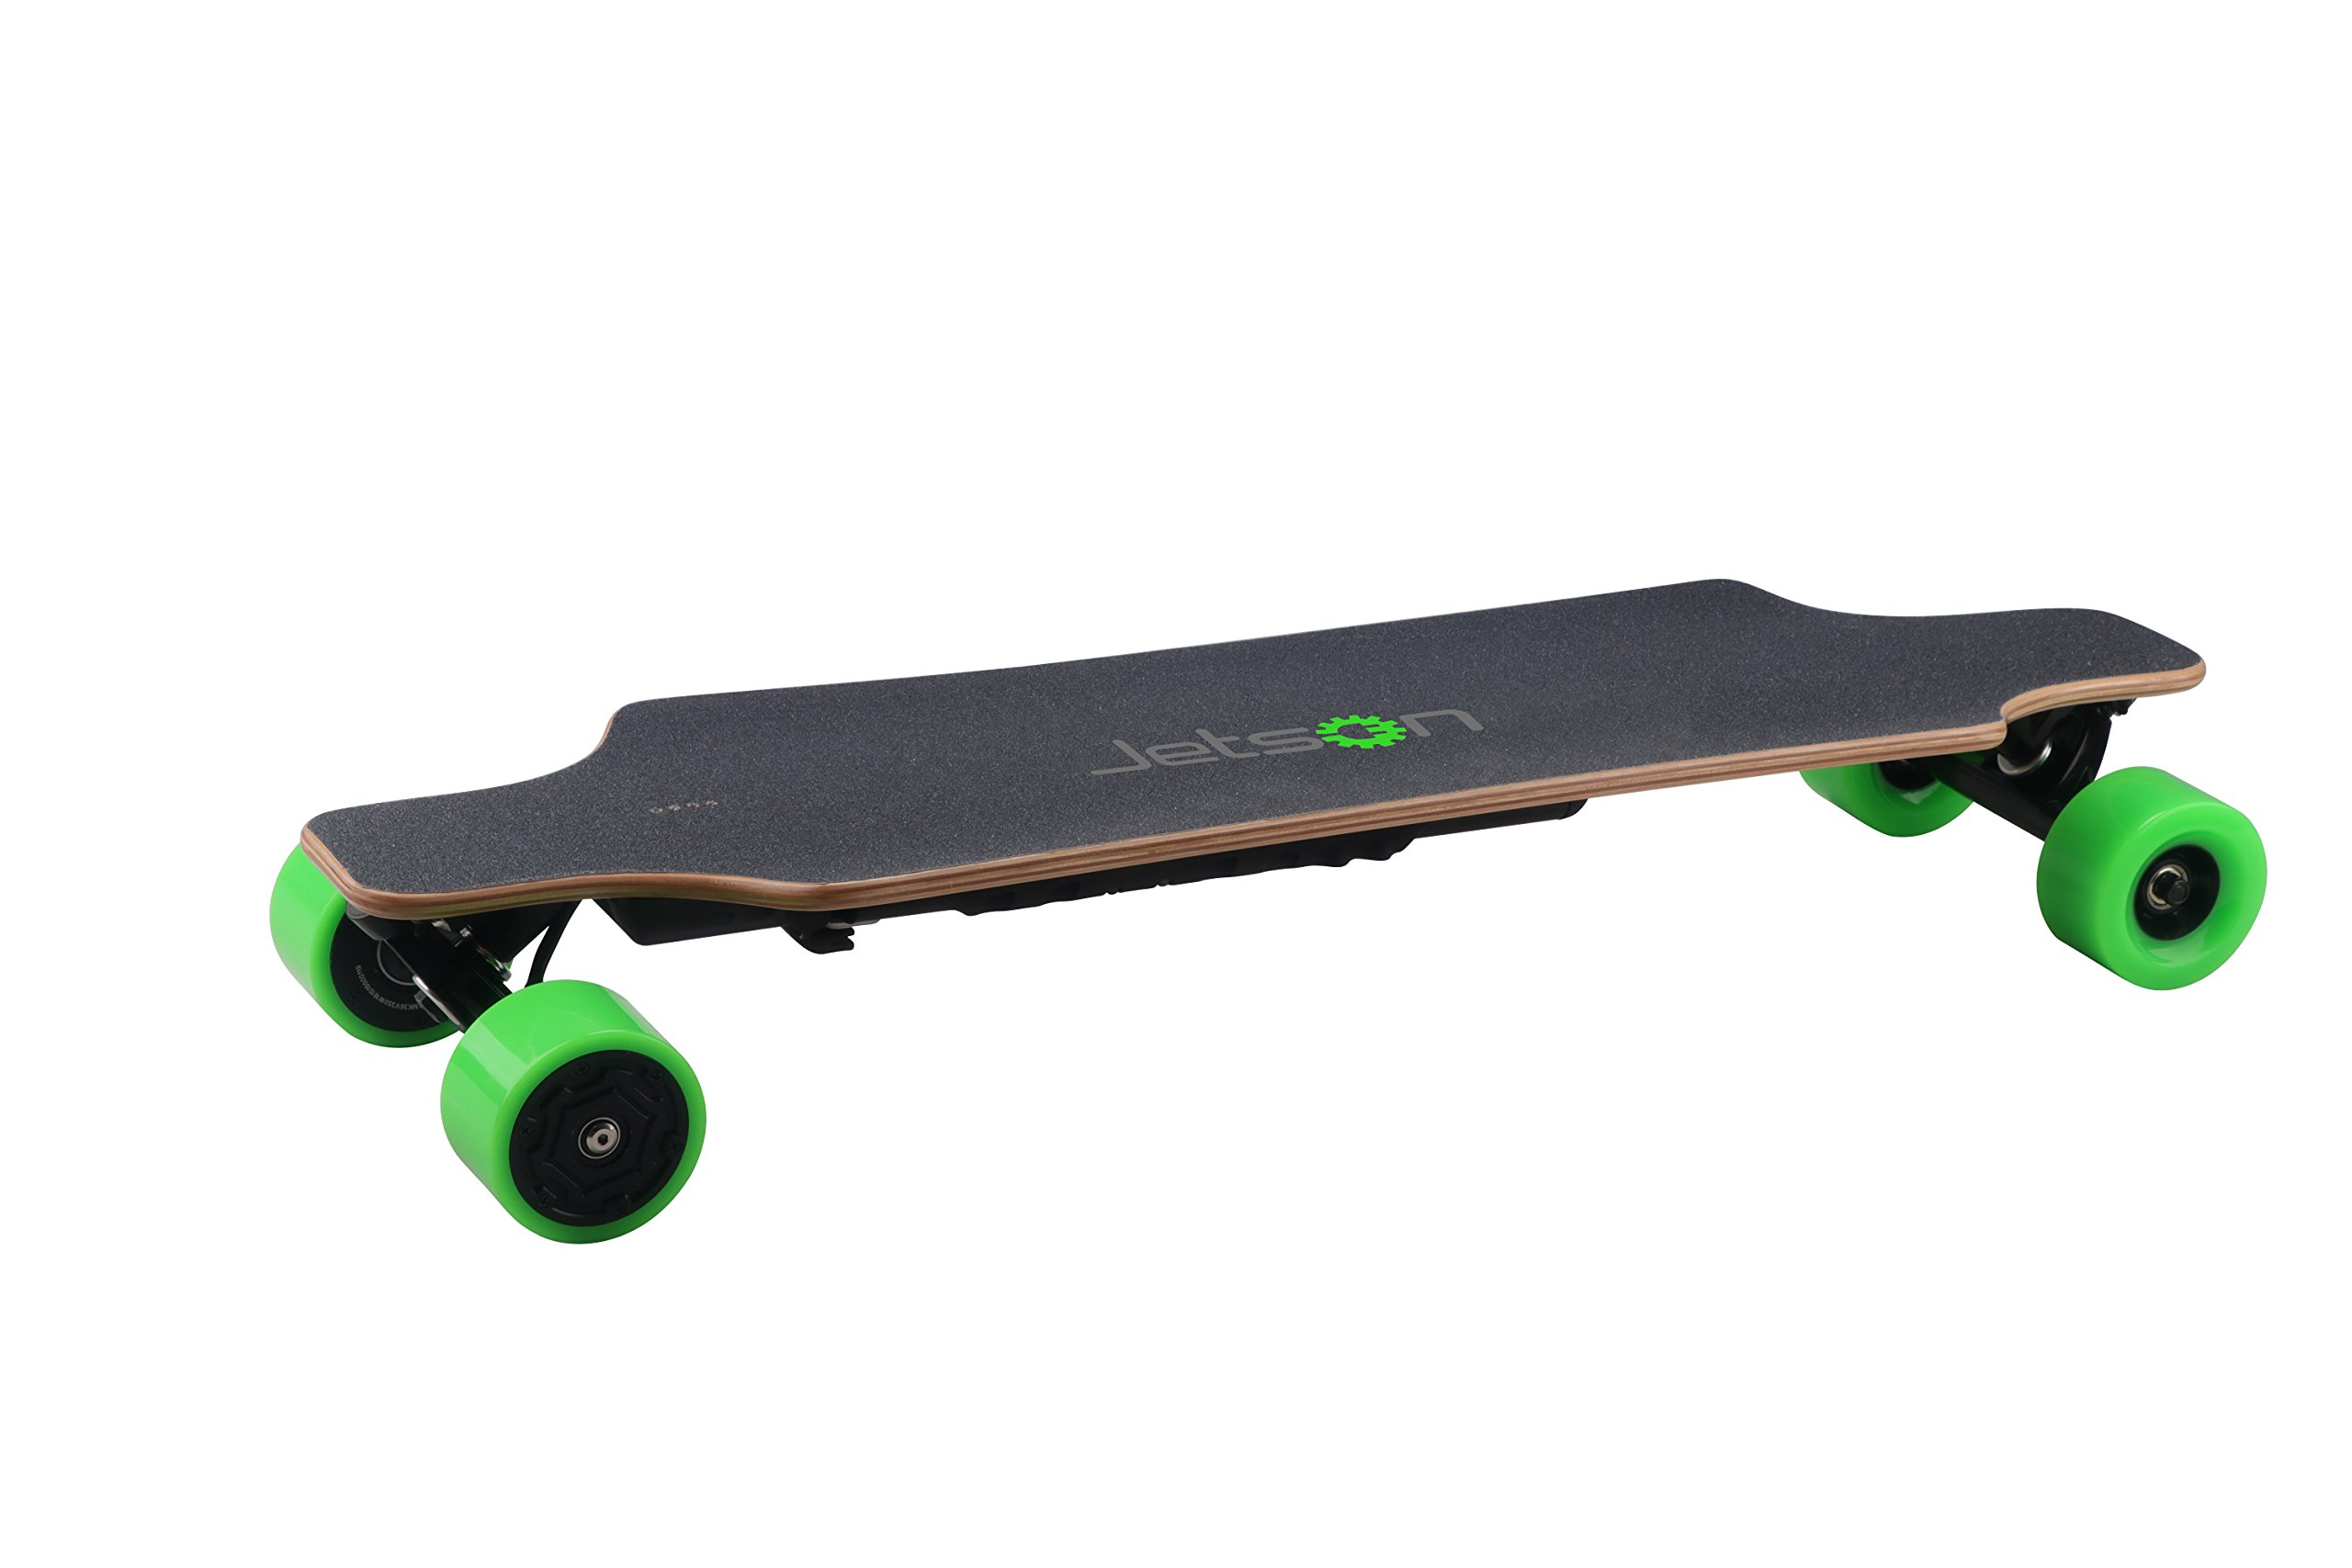 Jetson E-Punk 35'' Electric Longboard w/ Remote - Up to 25 MPH Top Speed, 20-25 Mile Range, 285 LB Rider Weight, 3 Hr Charge Time - Neon Green Wheels by Jetson